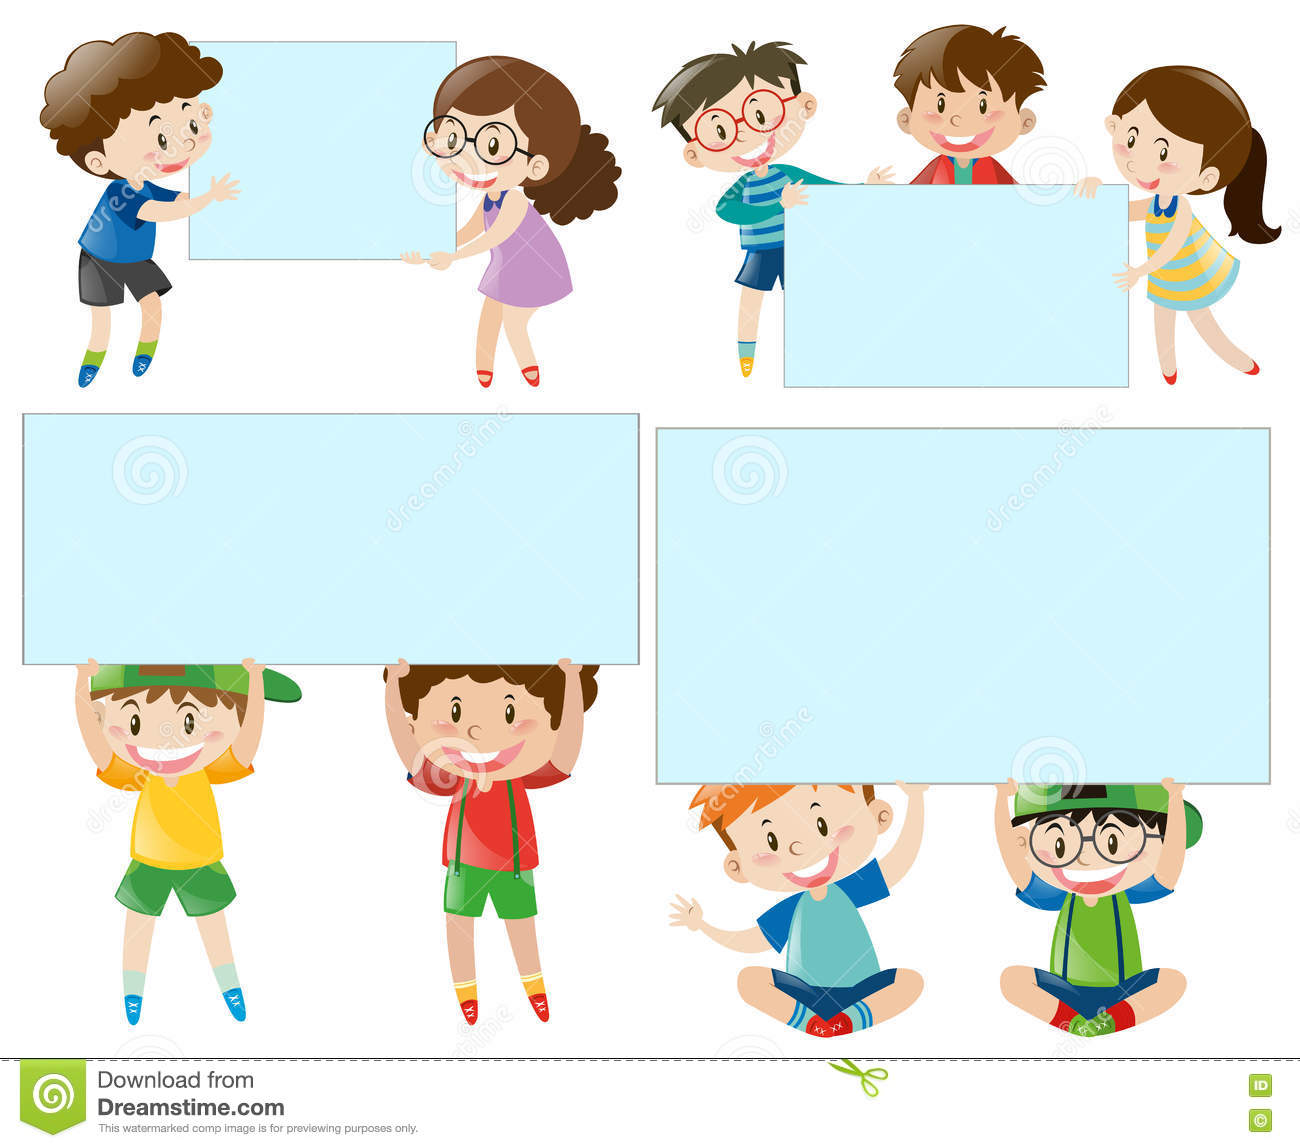 Border Template With Boys And Girls Stock Vector - Image: 81888278